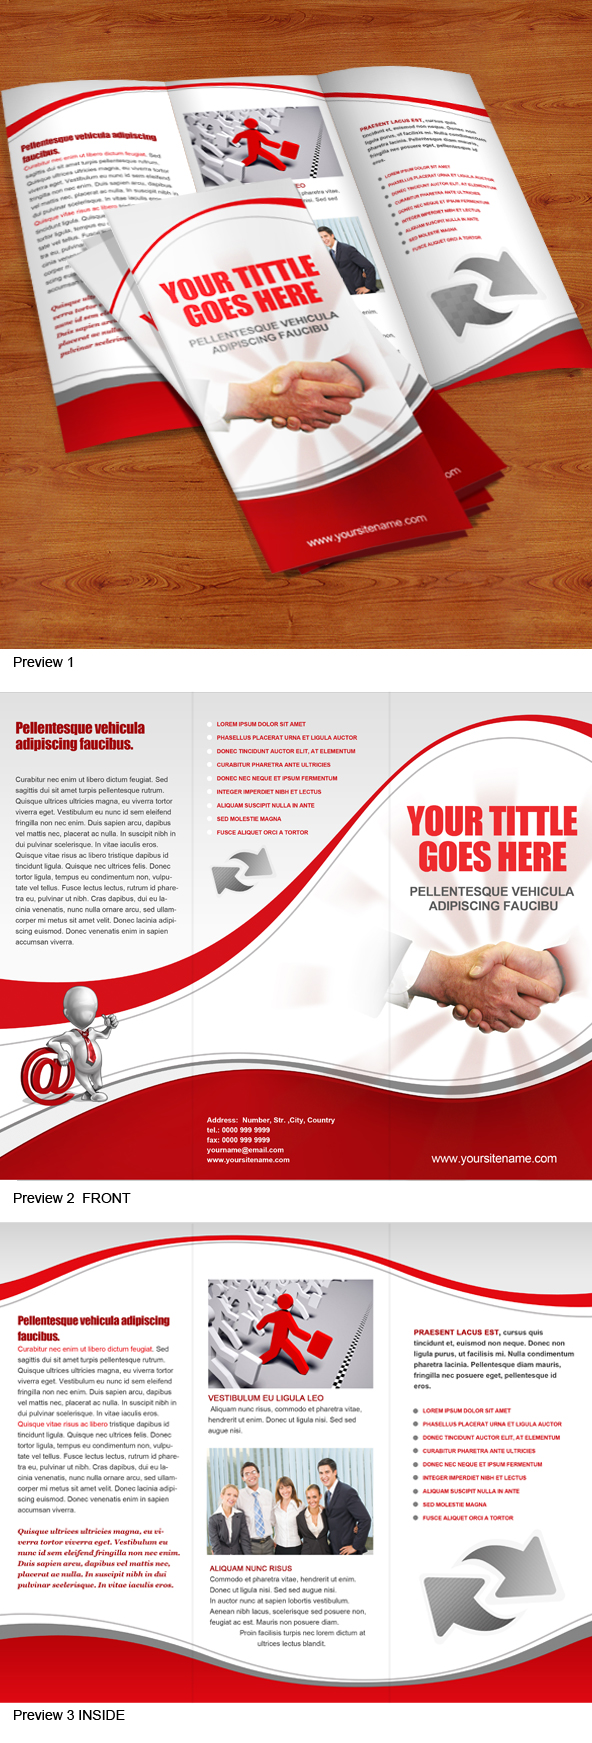 12 Free Tri-Fold Brochure Template PSD Images